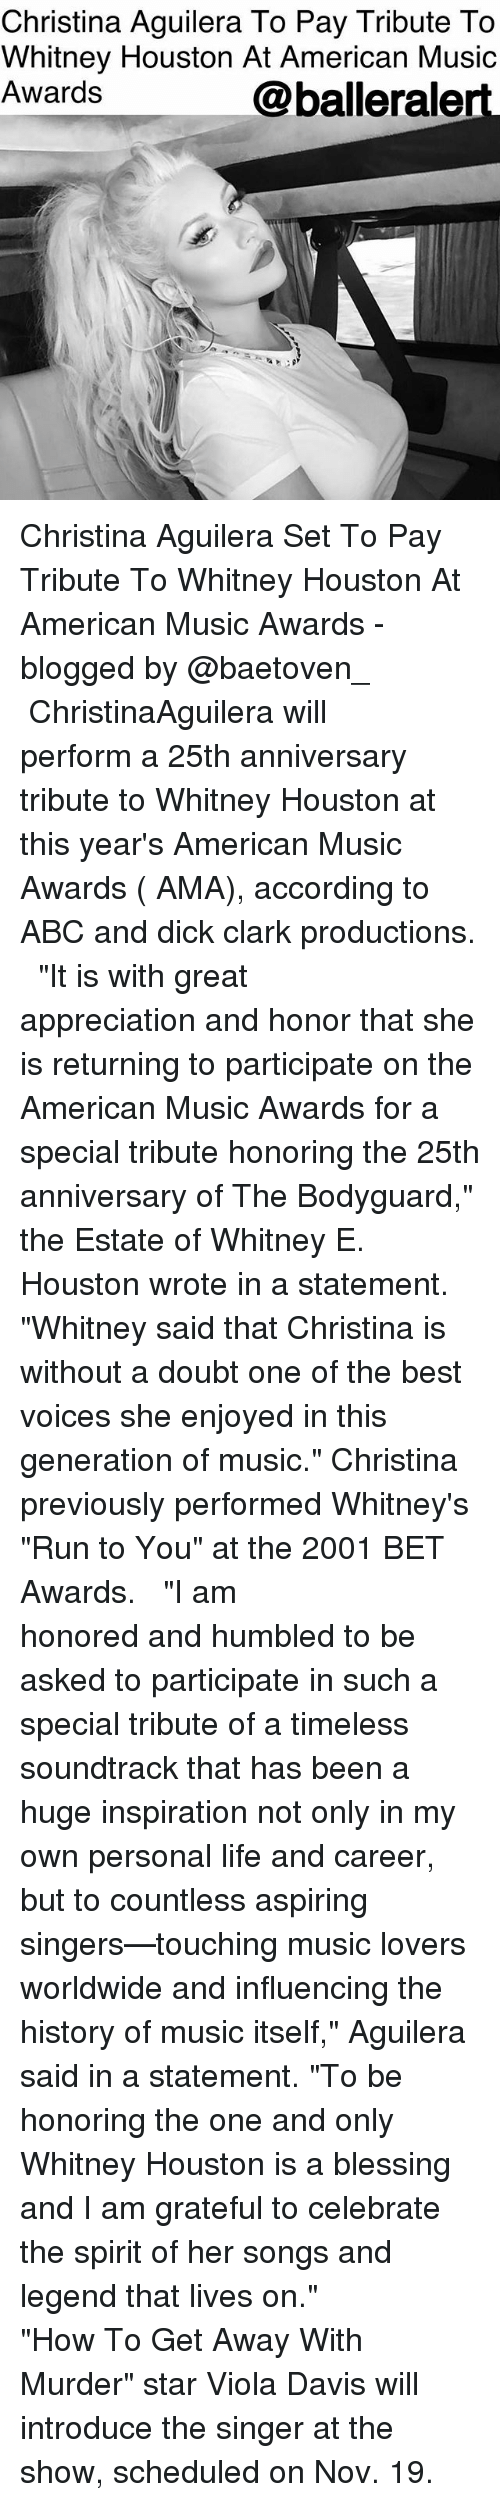 """viola: Christina Aguilera To Pay Tribute To  Whitney Houston At American Music  Awards  @balleralert Christina Aguilera Set To Pay Tribute To Whitney Houston At American Music Awards - blogged by @baetoven_ ⠀⠀⠀⠀⠀⠀⠀ ⠀⠀⠀⠀⠀⠀⠀ ChristinaAguilera will perform a 25th anniversary tribute to Whitney Houston at this year's American Music Awards ( AMA), according to ABC and dick clark productions. ⠀⠀⠀⠀⠀⠀⠀ ⠀⠀⠀⠀⠀⠀⠀ """"It is with great appreciation and honor that she is returning to participate on the American Music Awards for a special tribute honoring the 25th anniversary of The Bodyguard,"""" the Estate of Whitney E. Houston wrote in a statement. """"Whitney said that Christina is without a doubt one of the best voices she enjoyed in this generation of music."""" Christina previously performed Whitney's """"Run to You"""" at the 2001 BET Awards. ⠀⠀⠀⠀⠀⠀⠀ ⠀⠀⠀⠀⠀⠀⠀ """"I am honored and humbled to be asked to participate in such a special tribute of a timeless soundtrack that has been a huge inspiration not only in my own personal life and career, but to countless aspiring singers—touching music lovers worldwide and influencing the history of music itself,"""" Aguilera said in a statement. """"To be honoring the one and only Whitney Houston is a blessing and I am grateful to celebrate the spirit of her songs and legend that lives on."""" ⠀⠀⠀⠀⠀⠀⠀ ⠀⠀⠀⠀⠀⠀⠀ """"How To Get Away With Murder"""" star Viola Davis will introduce the singer at the show, scheduled on Nov. 19."""